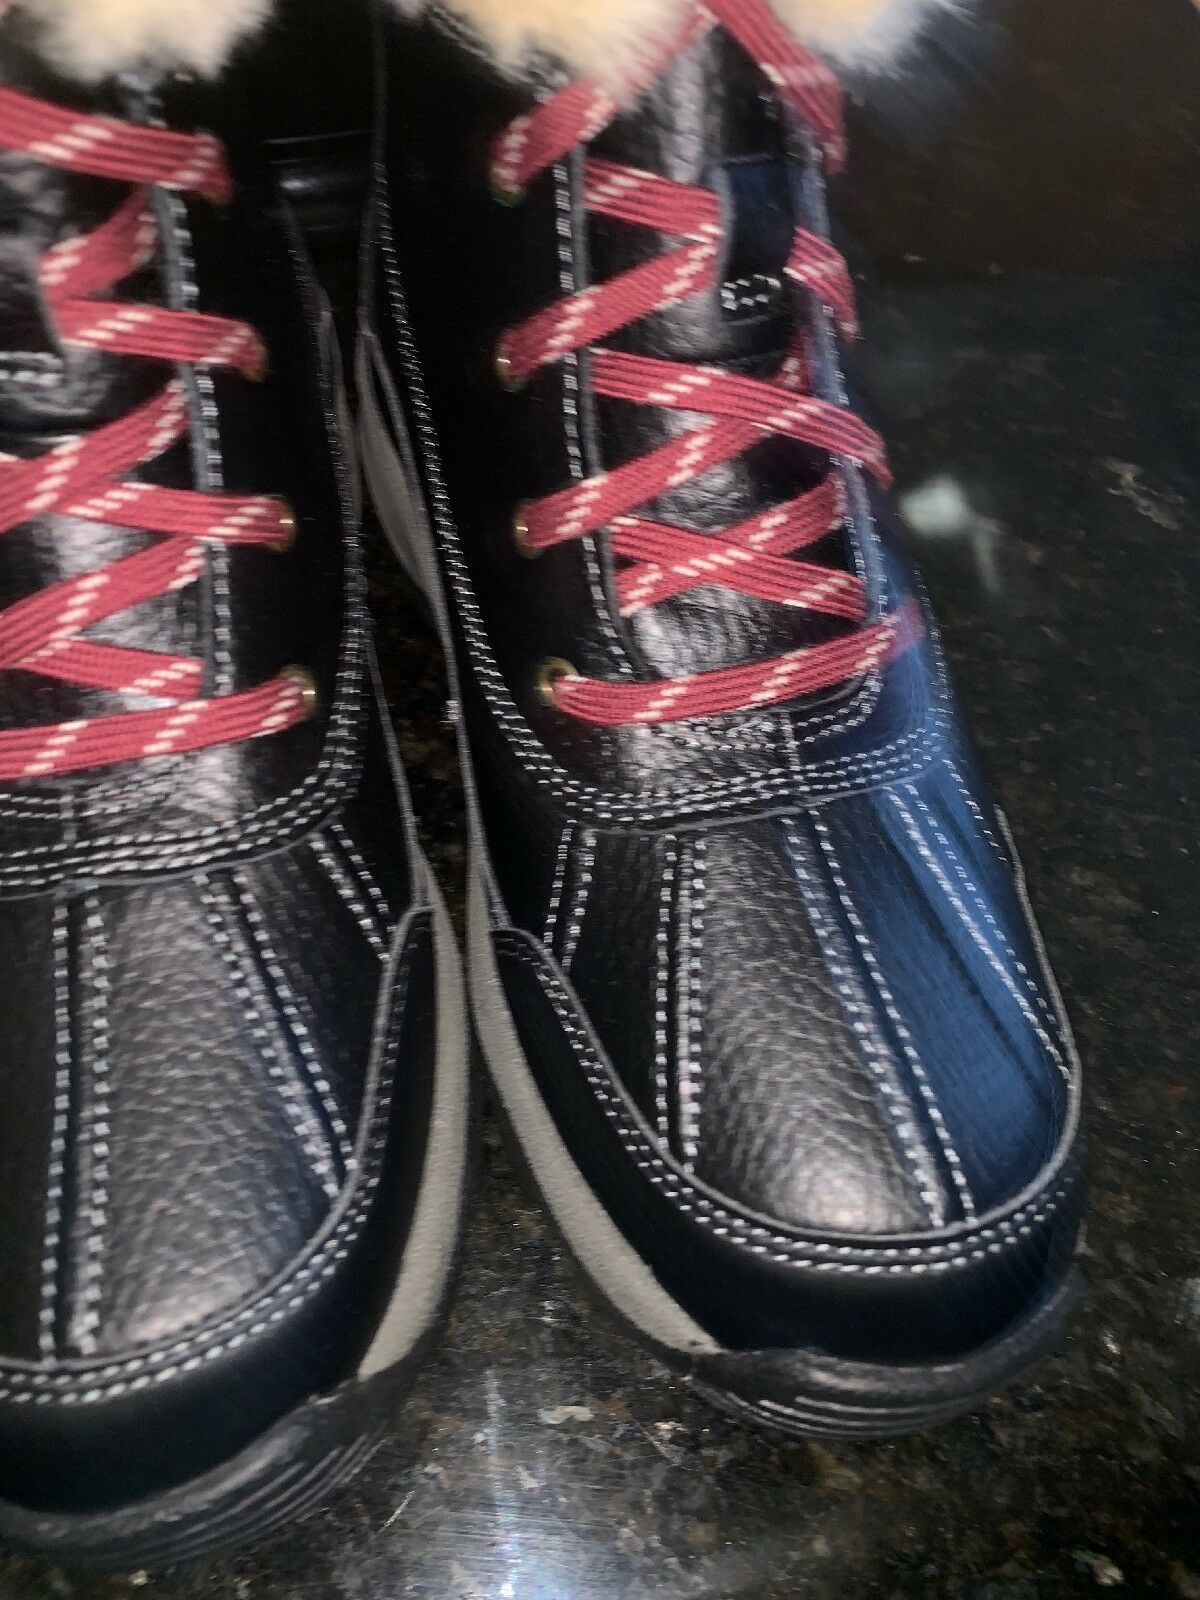 Clarks Boots Boots Boots Black Leather Mazlyn Arctic Water Resistant Size 6.5 M b143dc